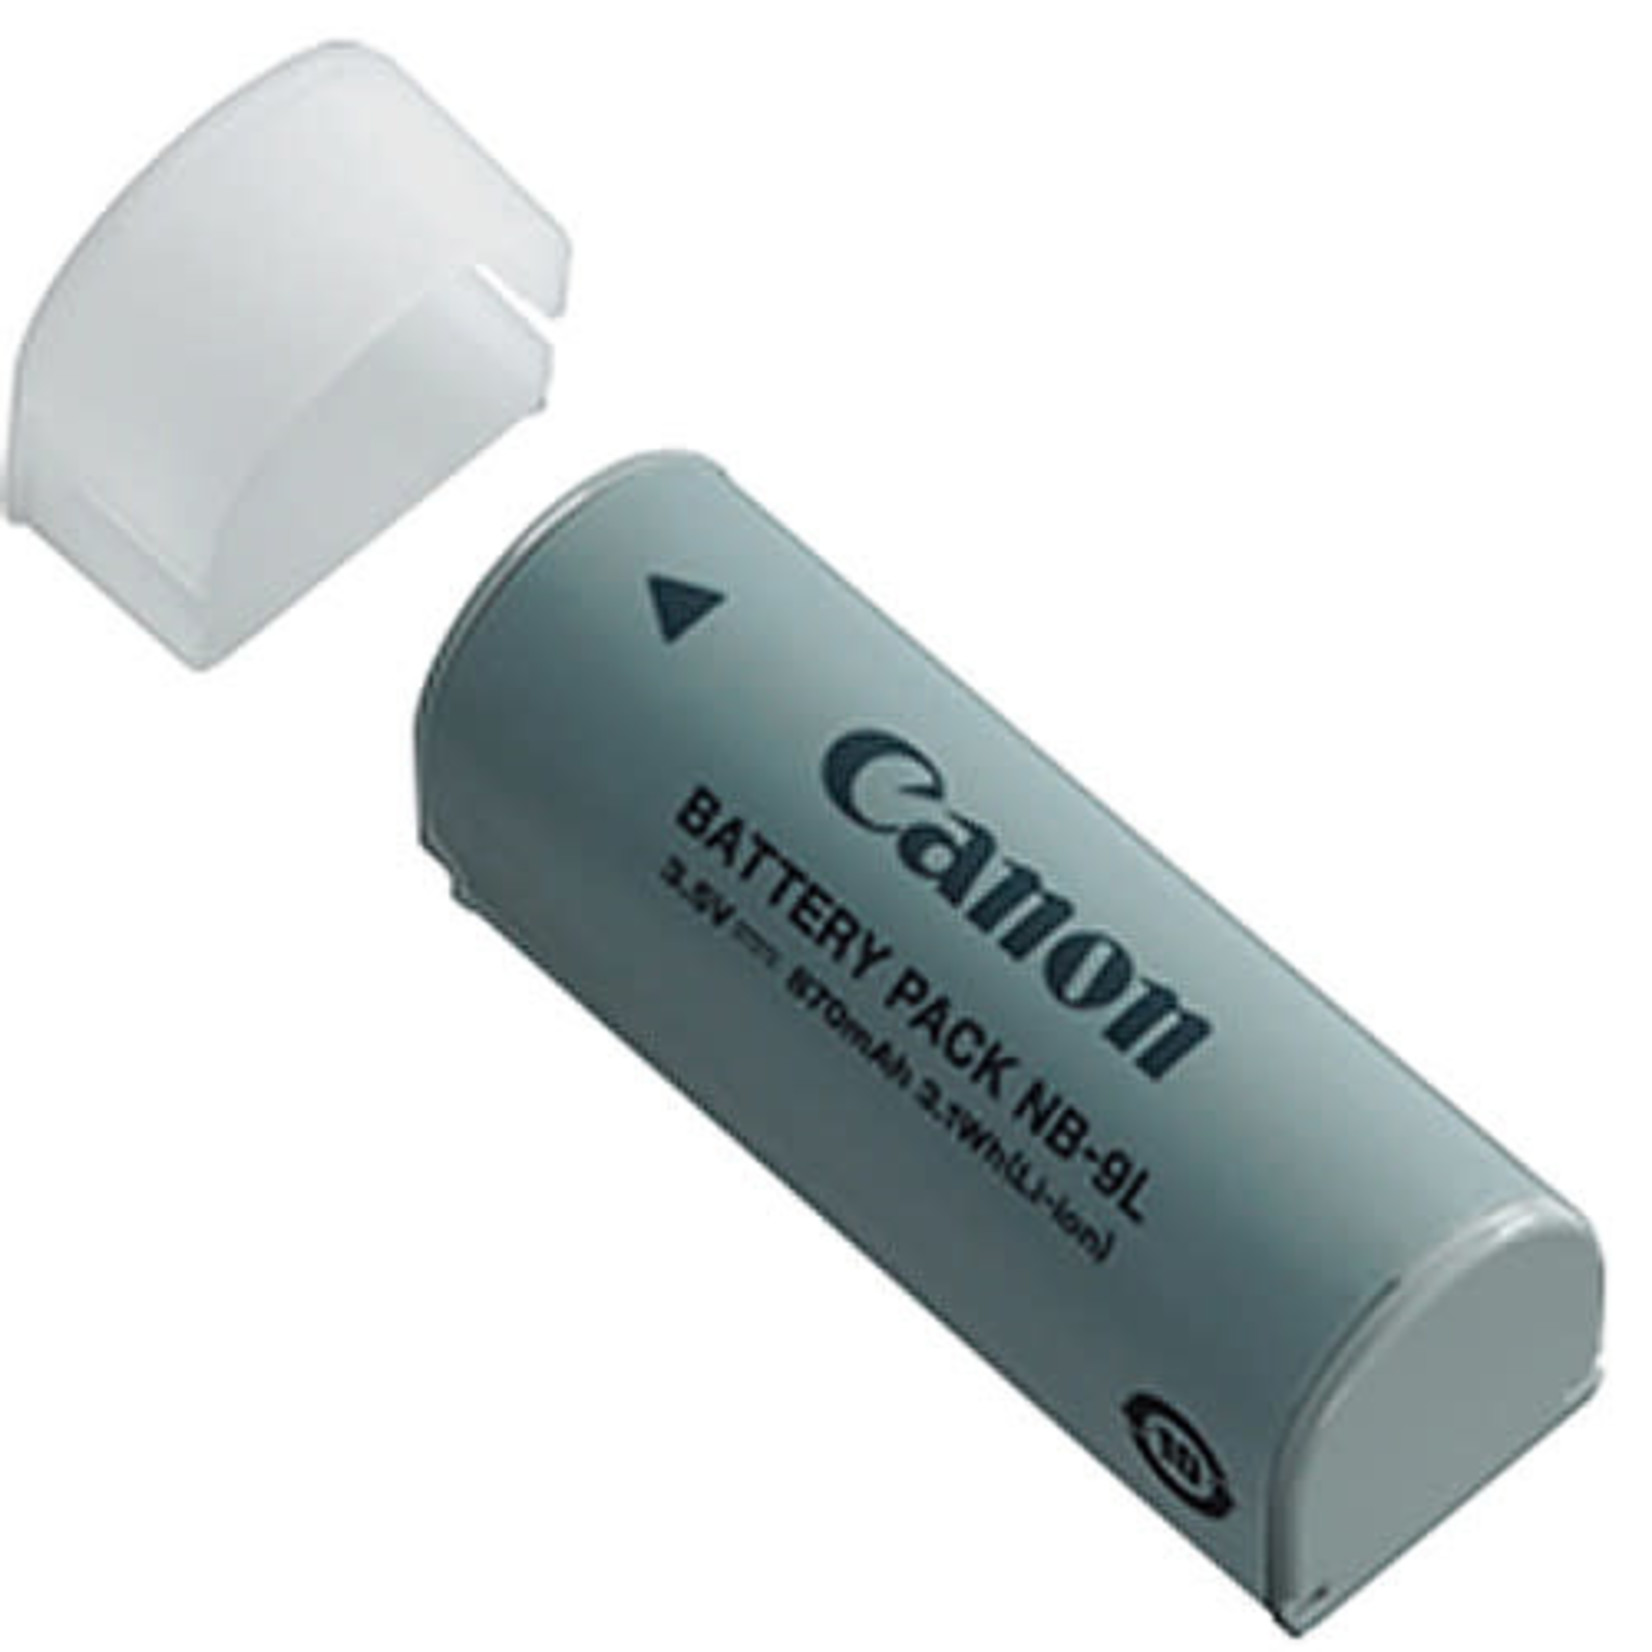 Canon Canon NB-9L Lithium-Ion Battery Pack (3.5V)